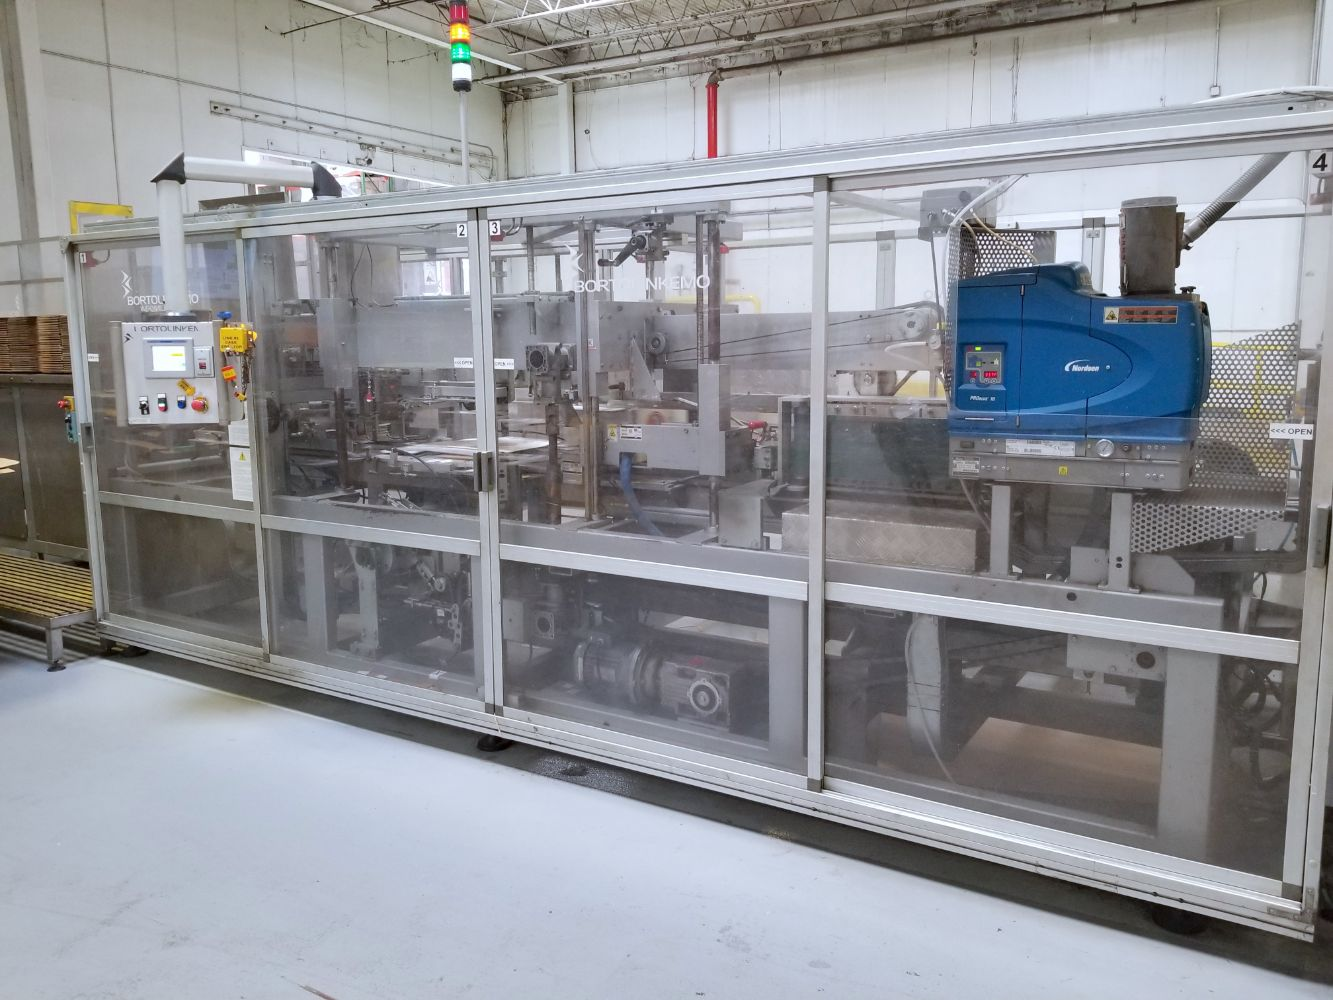 Final Auction of Surplus Packaging Equipment from Largest Rum Company